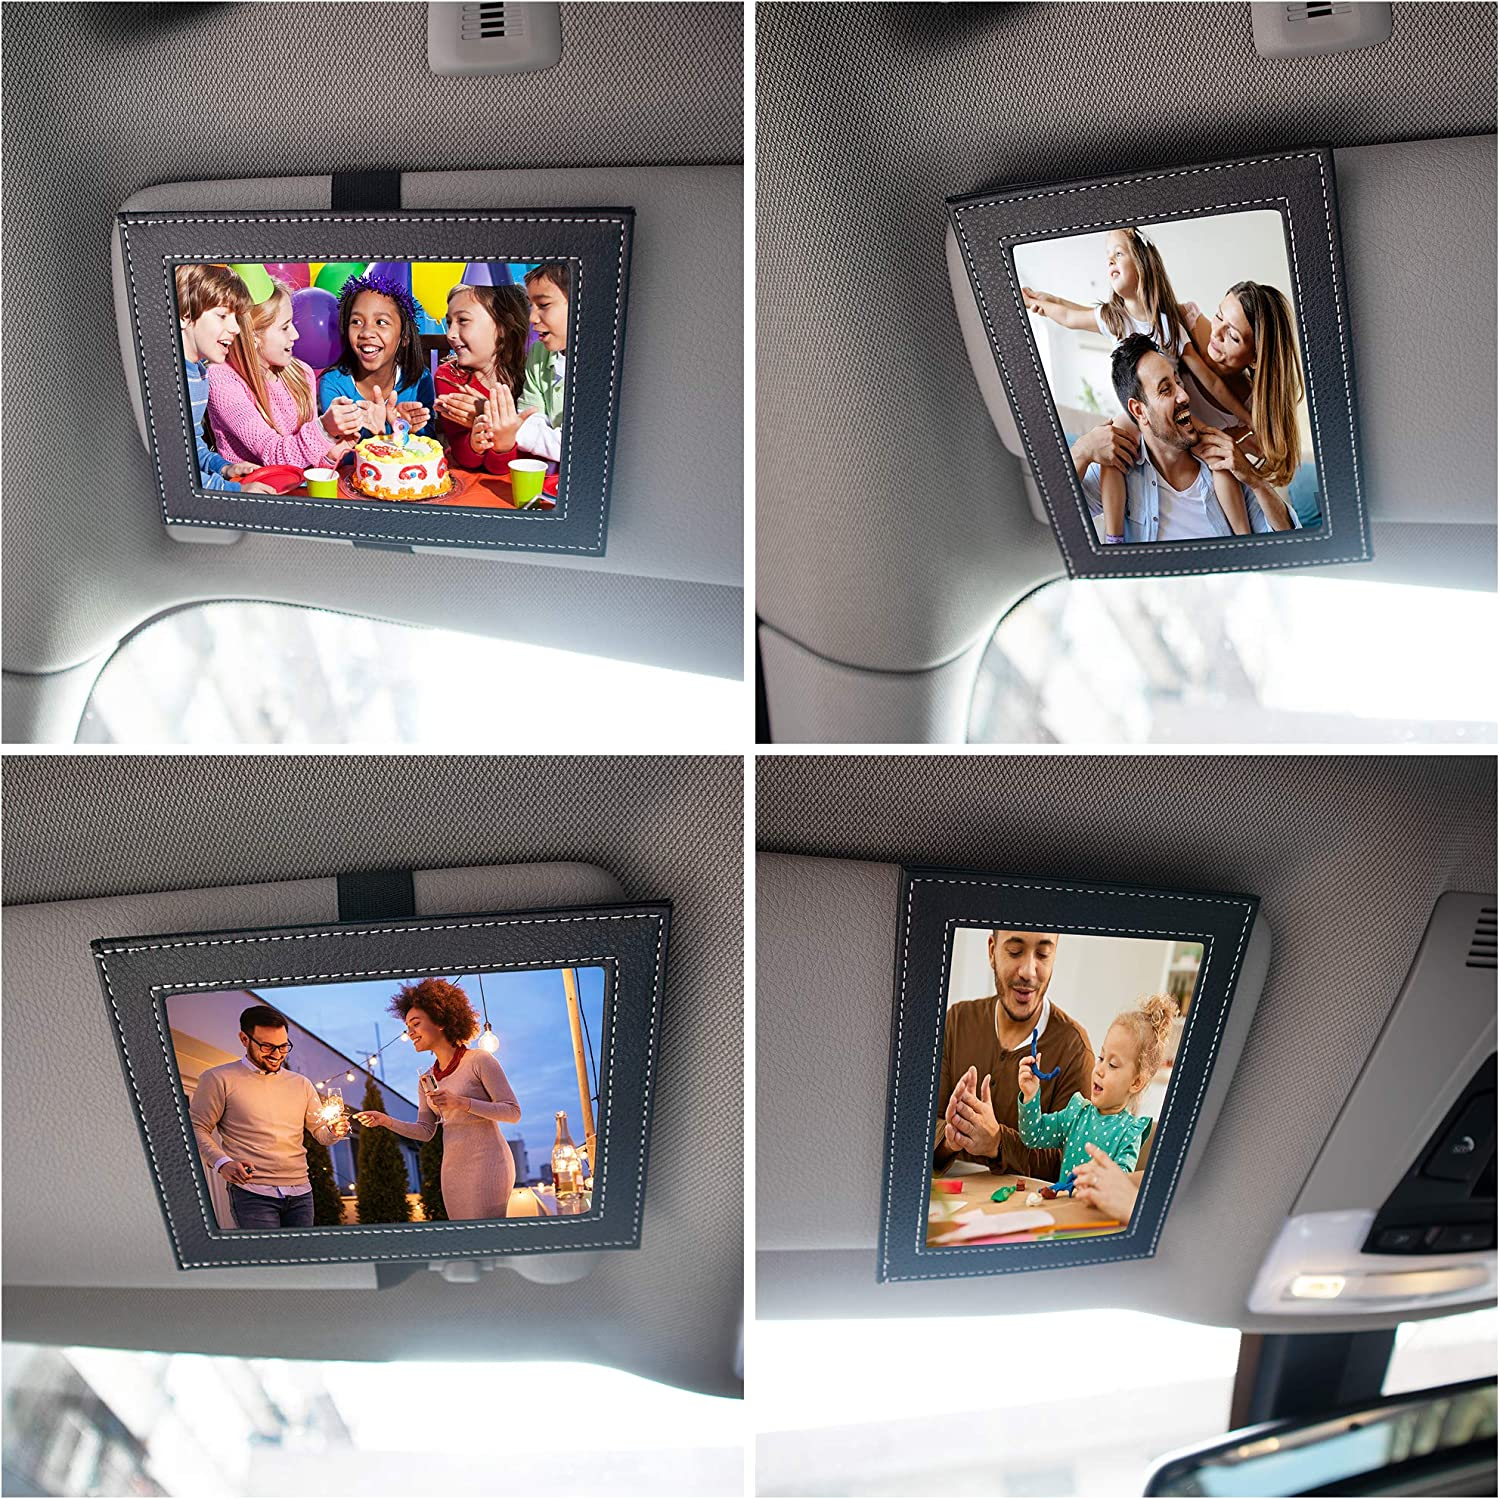 Temlum Artificial Leather Visor Photo/Picture Frames Fits Standa